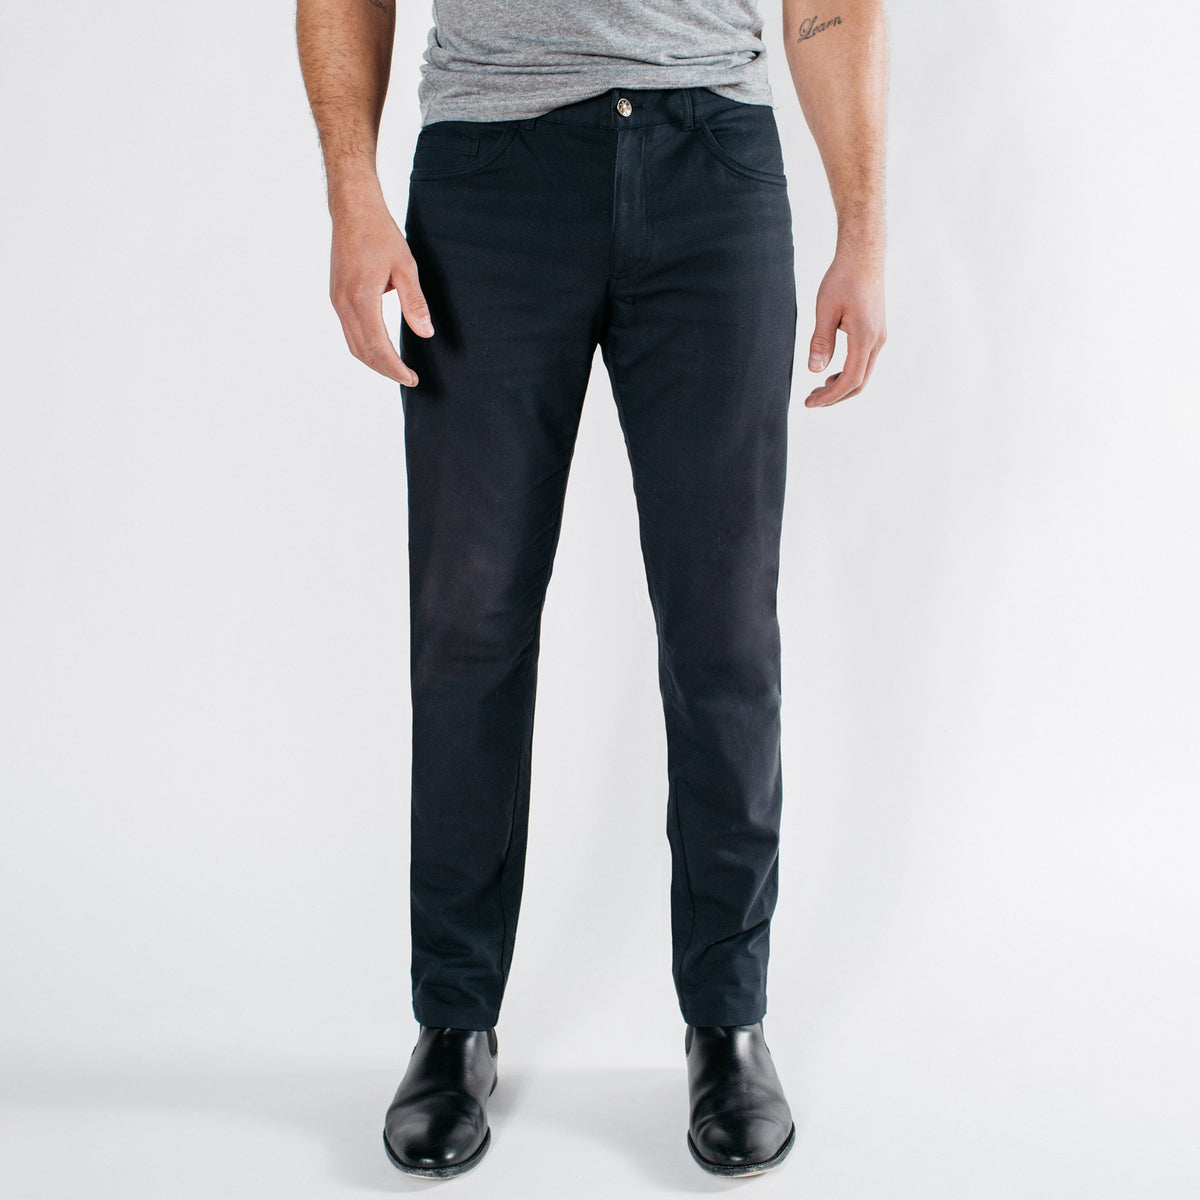 CORE // Black Tech 5-Pocket Pant